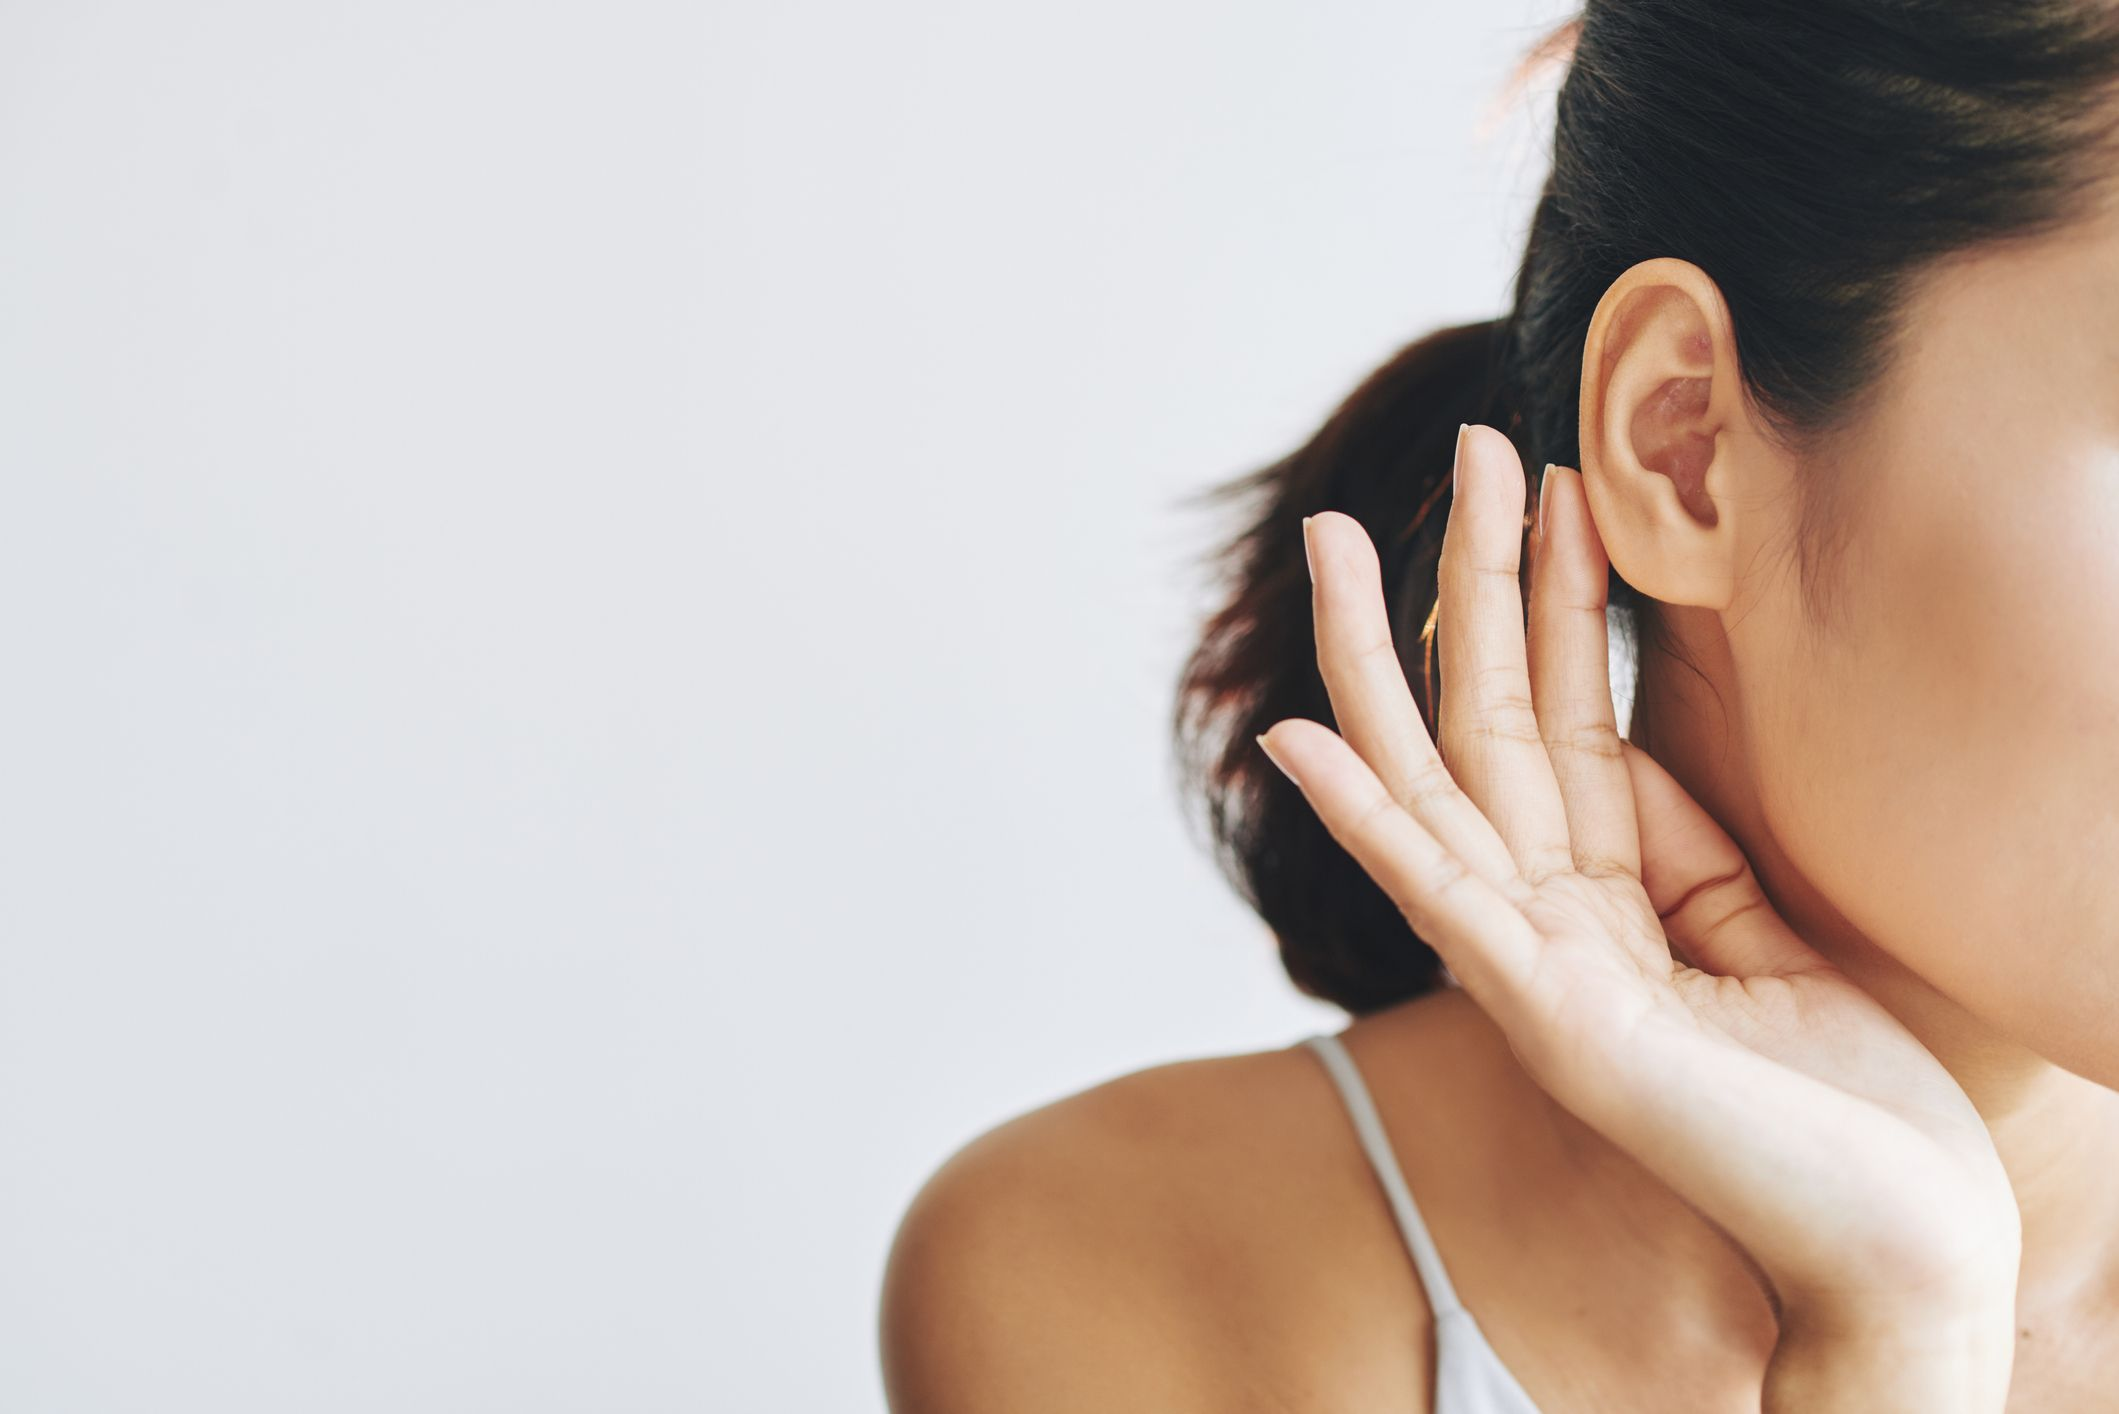 Will InnerScope Hearing (INND) Recover After The Recent Fall?